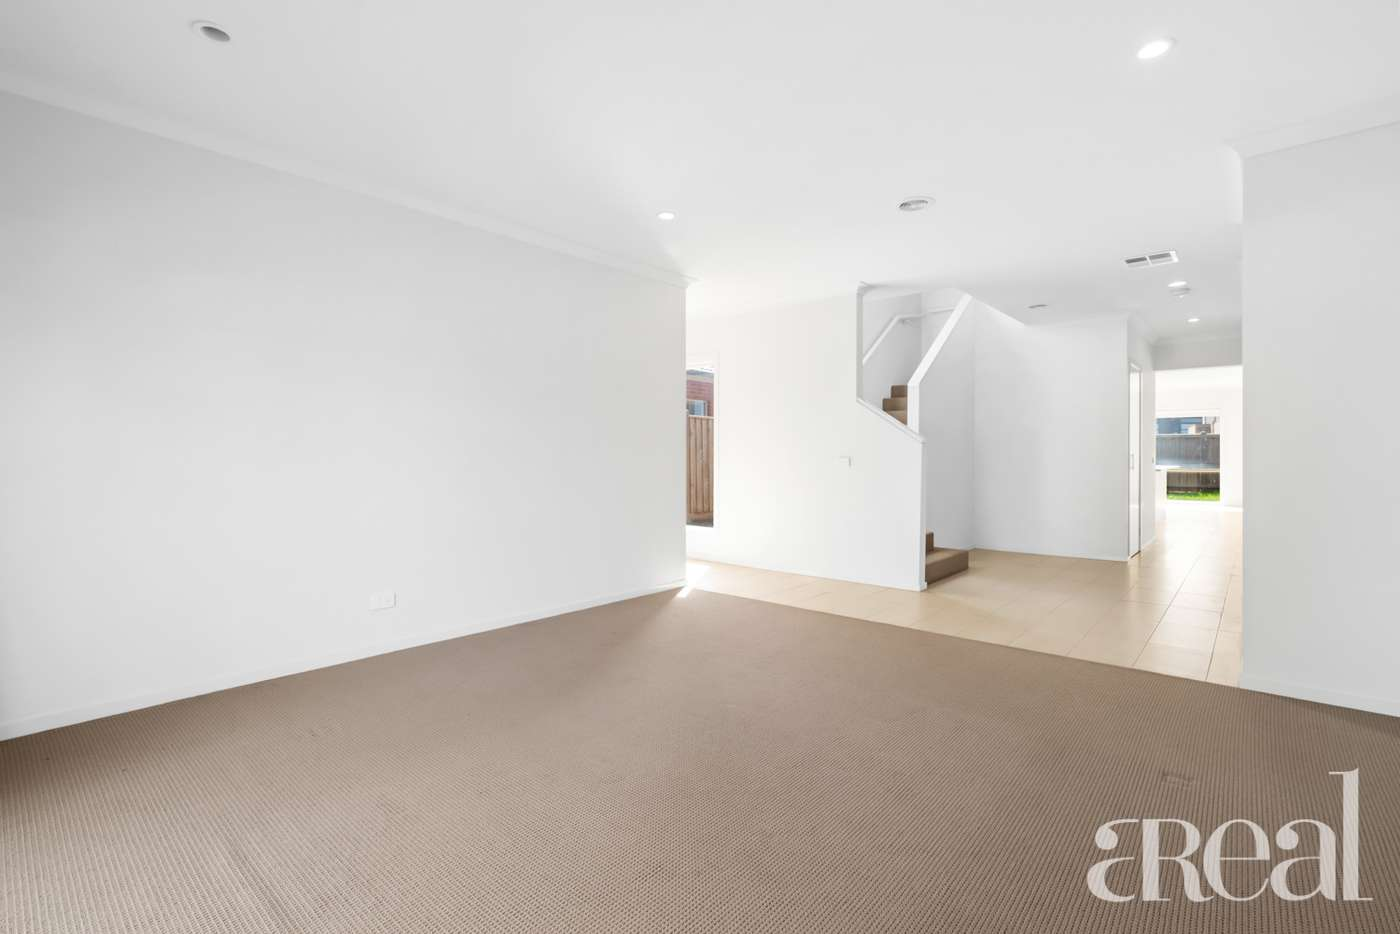 Sixth view of Homely house listing, 329 Saltwater Promenade, Point Cook VIC 3030